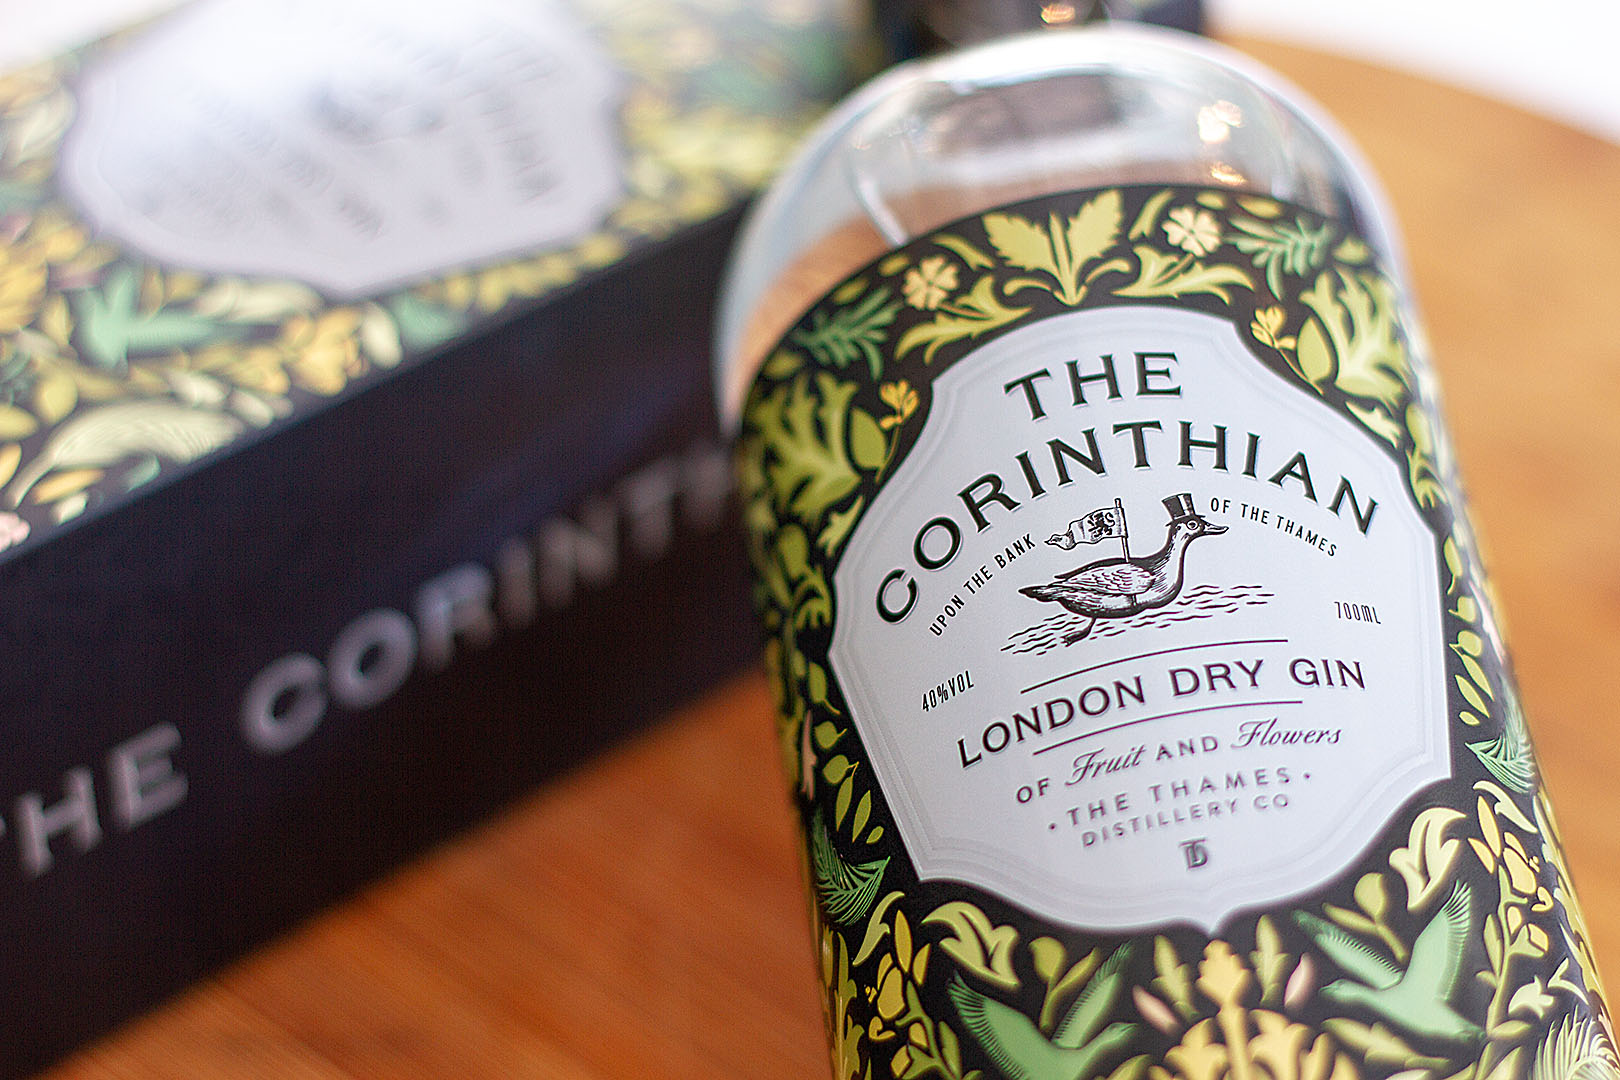 Product photography: A gin bottle resting partially on its box with the labels clearly legible on a